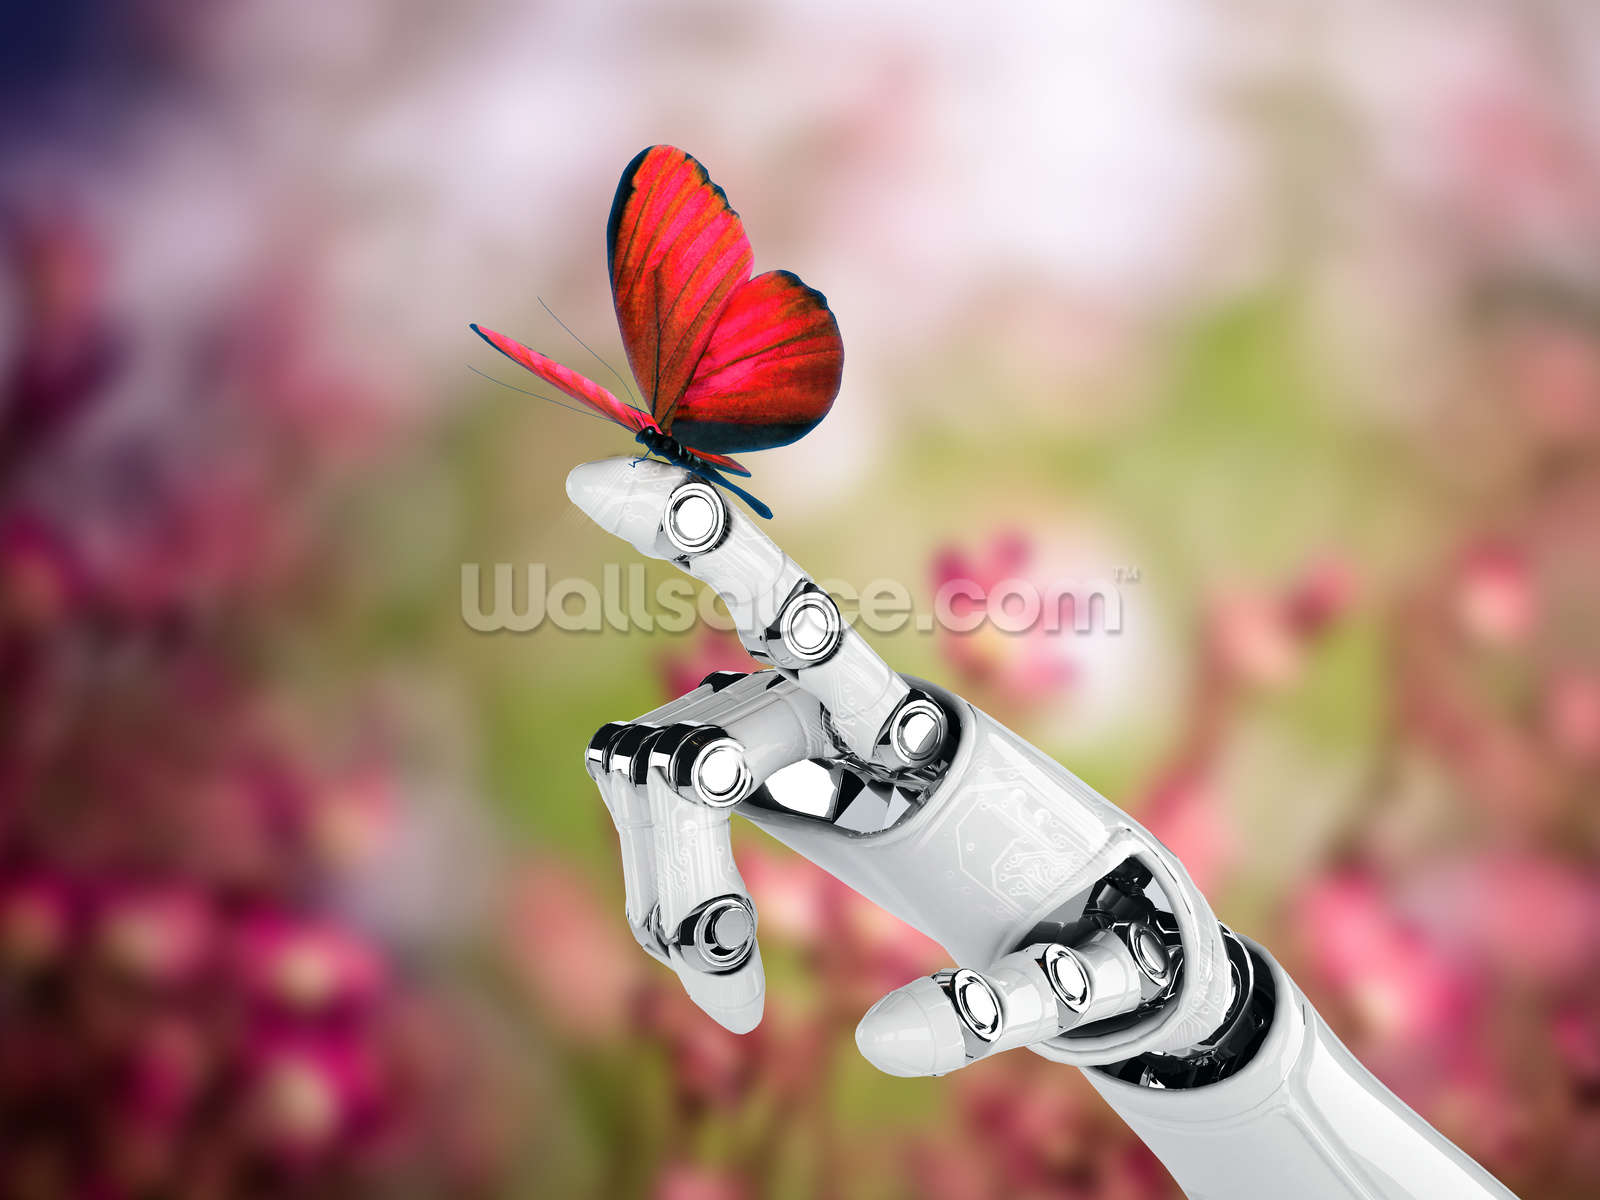 Best Wallpaper Butterfly Hand - 57973365robot-hand-butterfly  You Should Have_32758.jpg